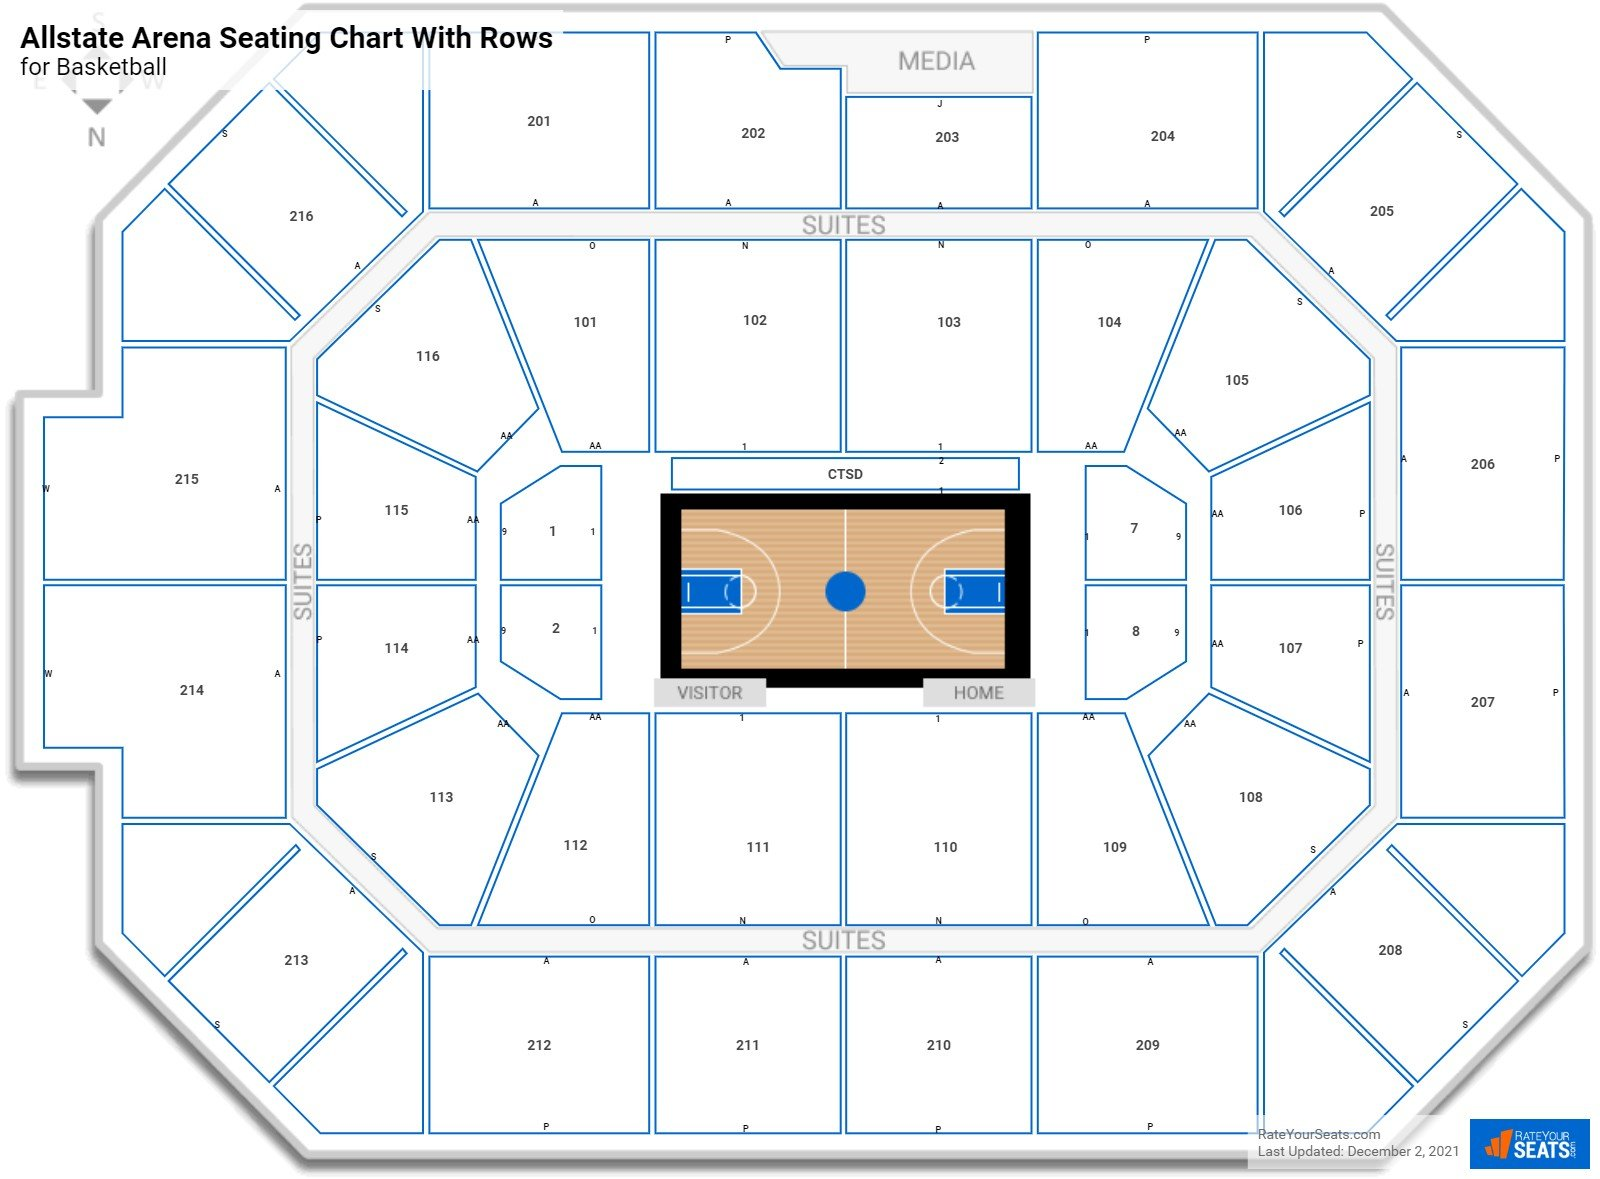 Allstate Arena seating chart with rows basketball